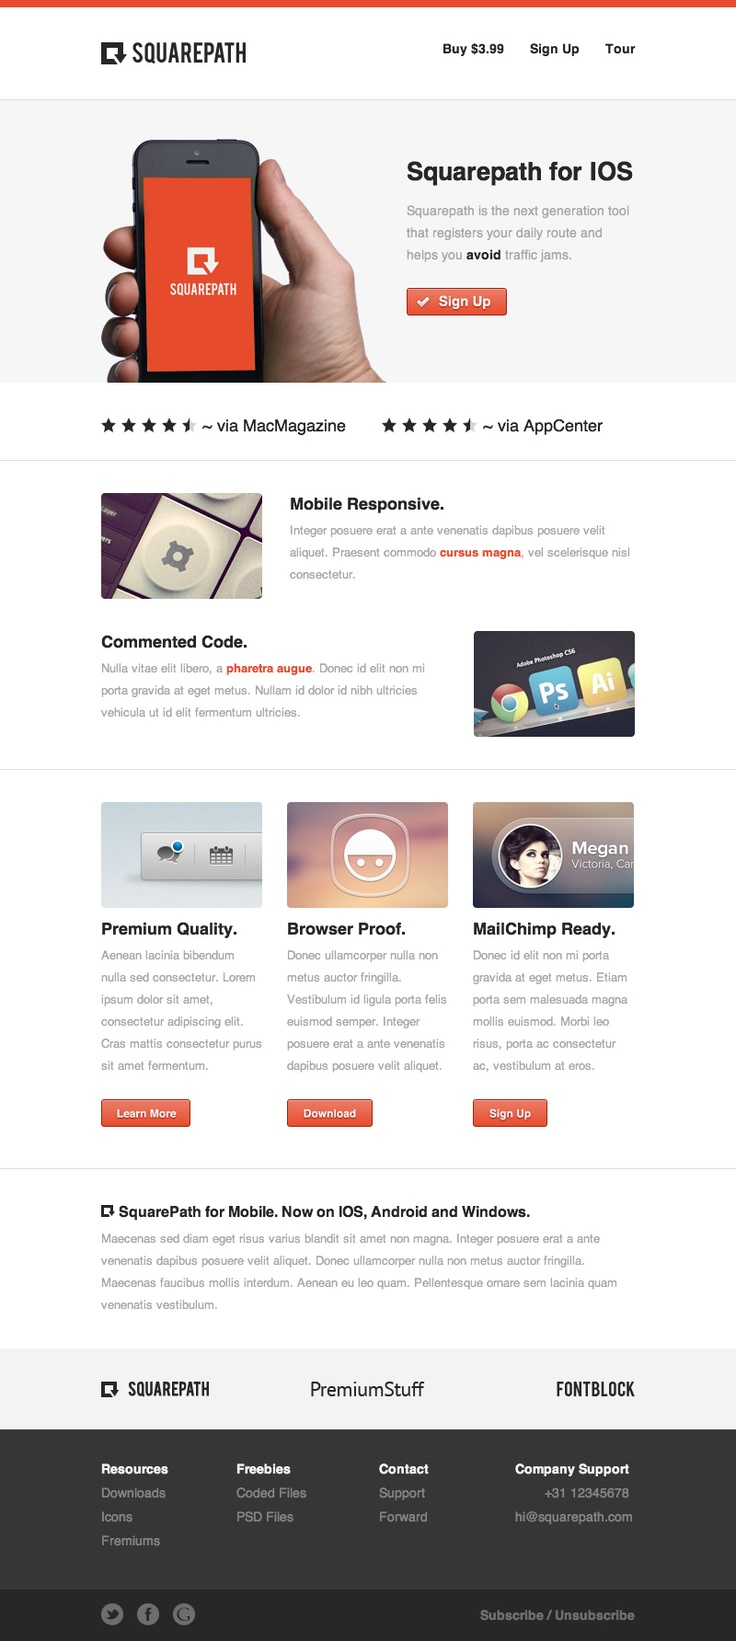 17 best Email/ Newsletter images on Pinterest | Email newsletters ...